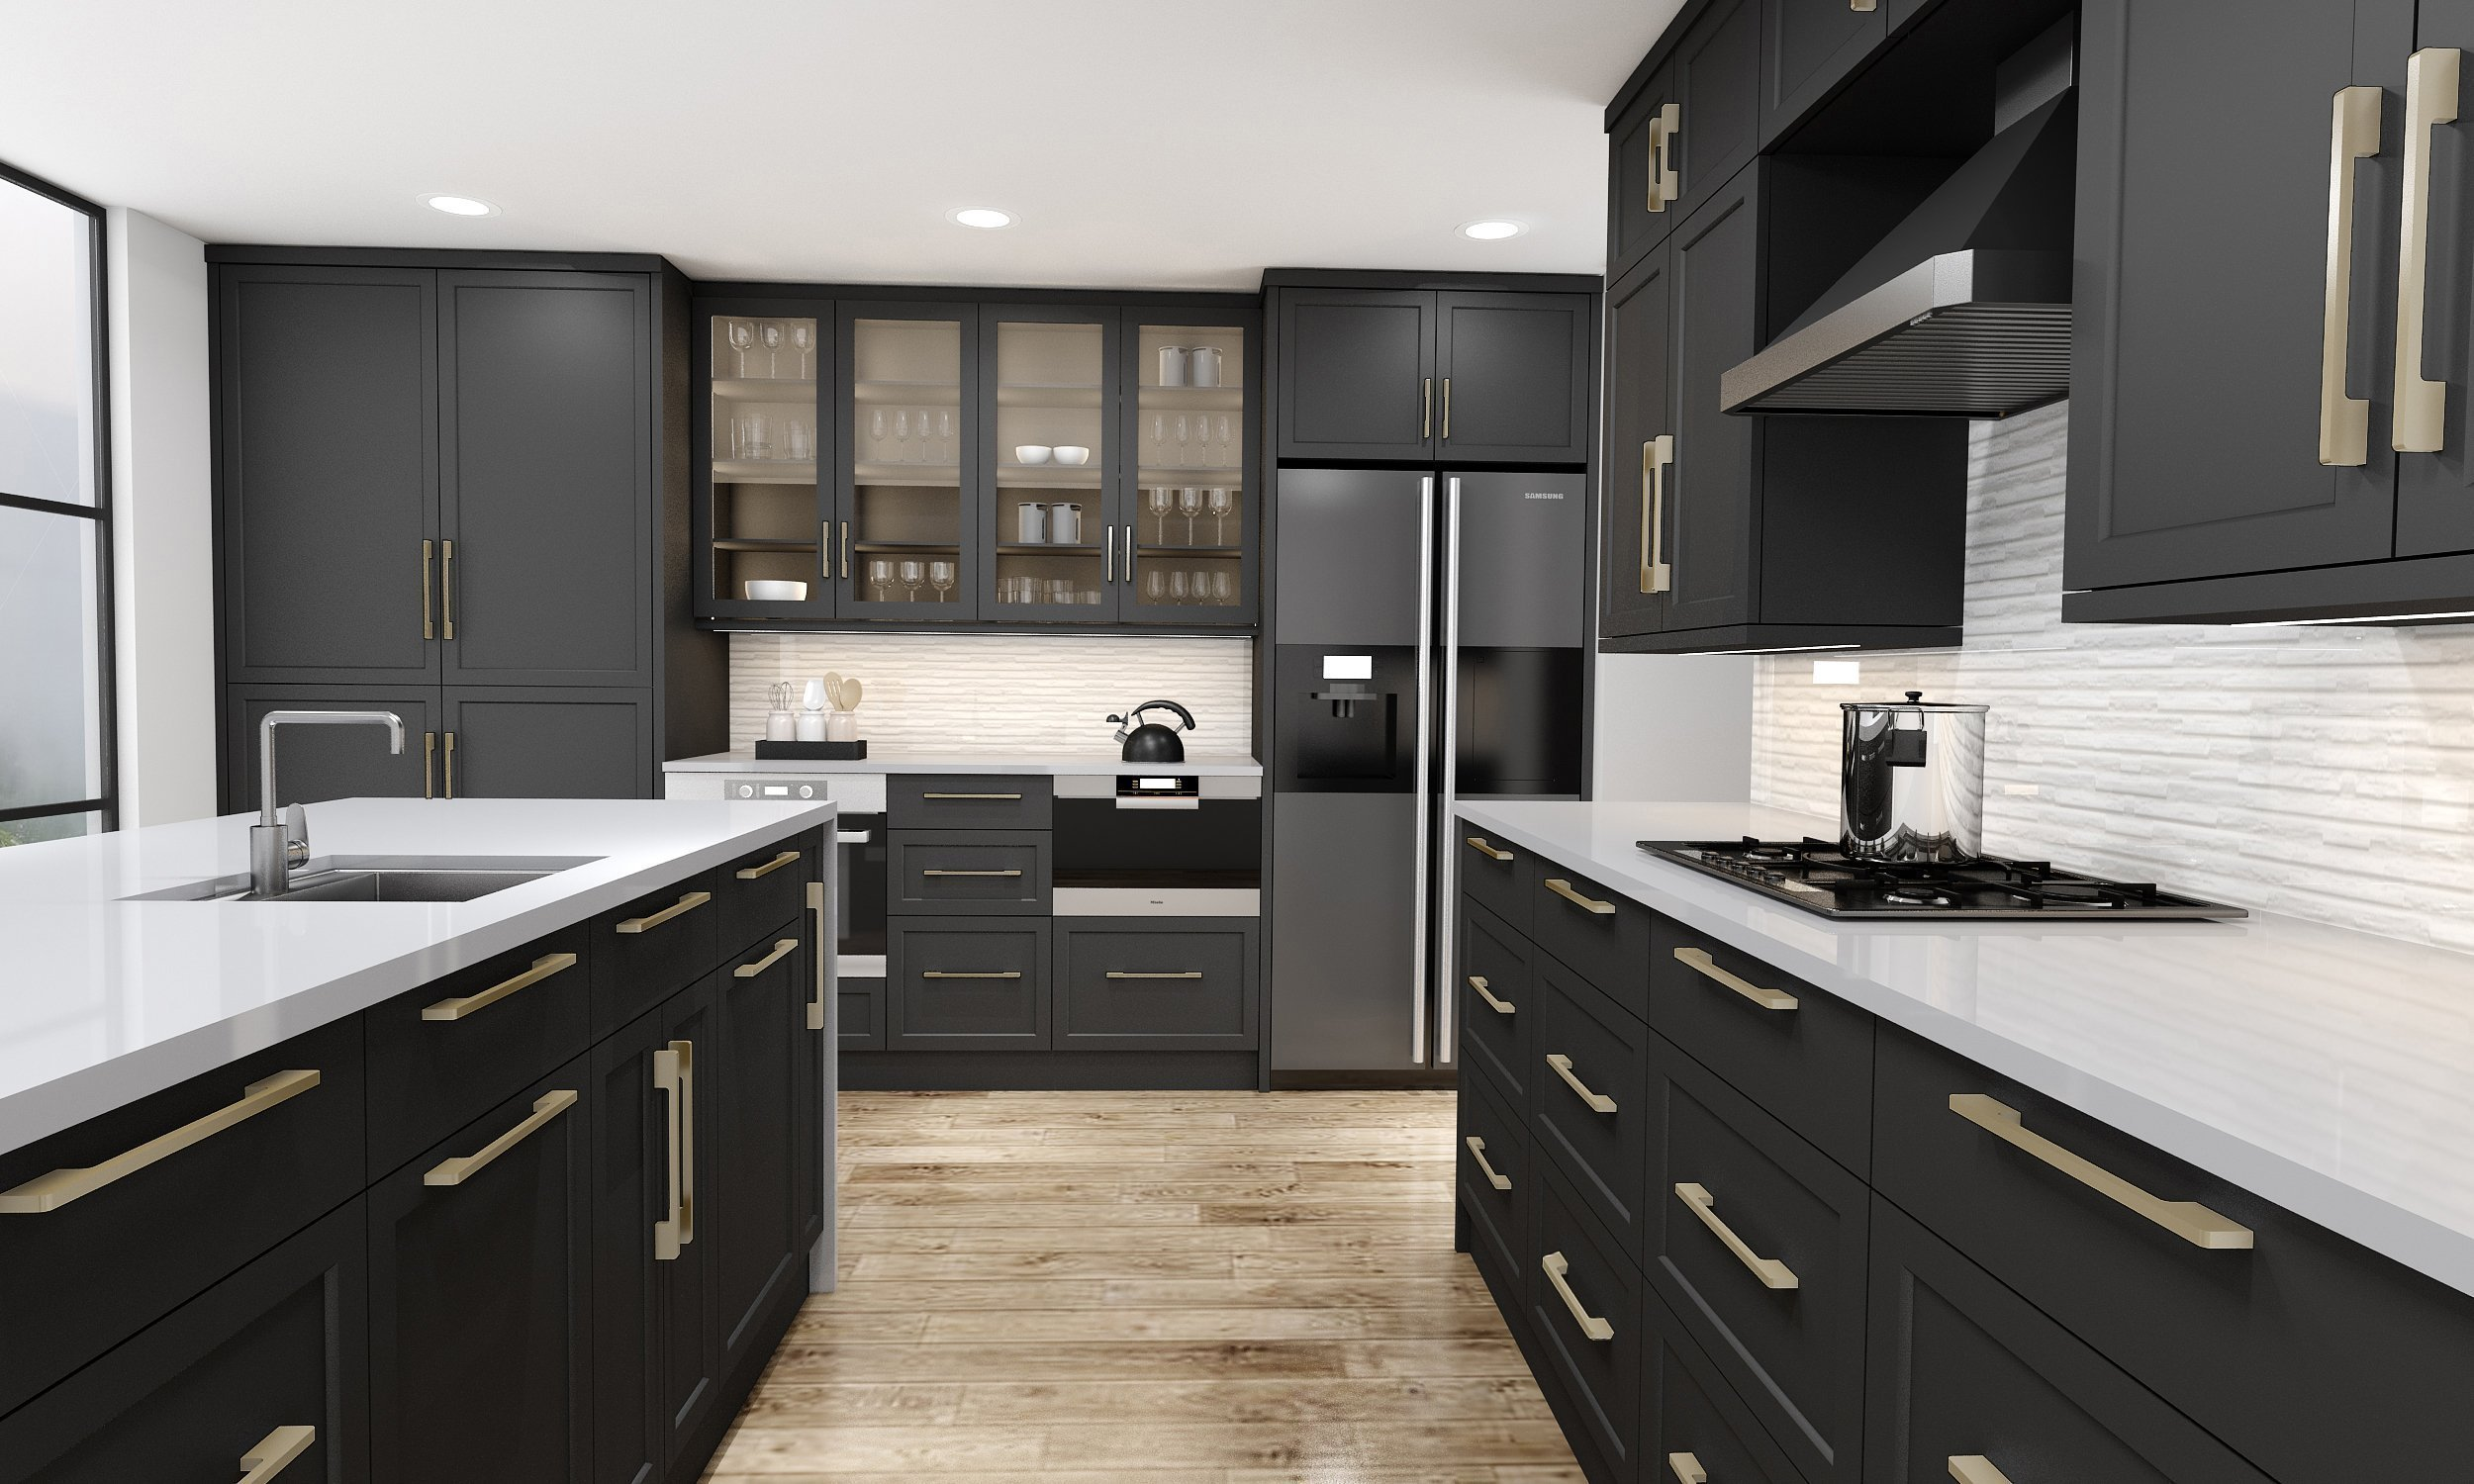 Shaker Style L Shape Kitchen in Black Finish With Island